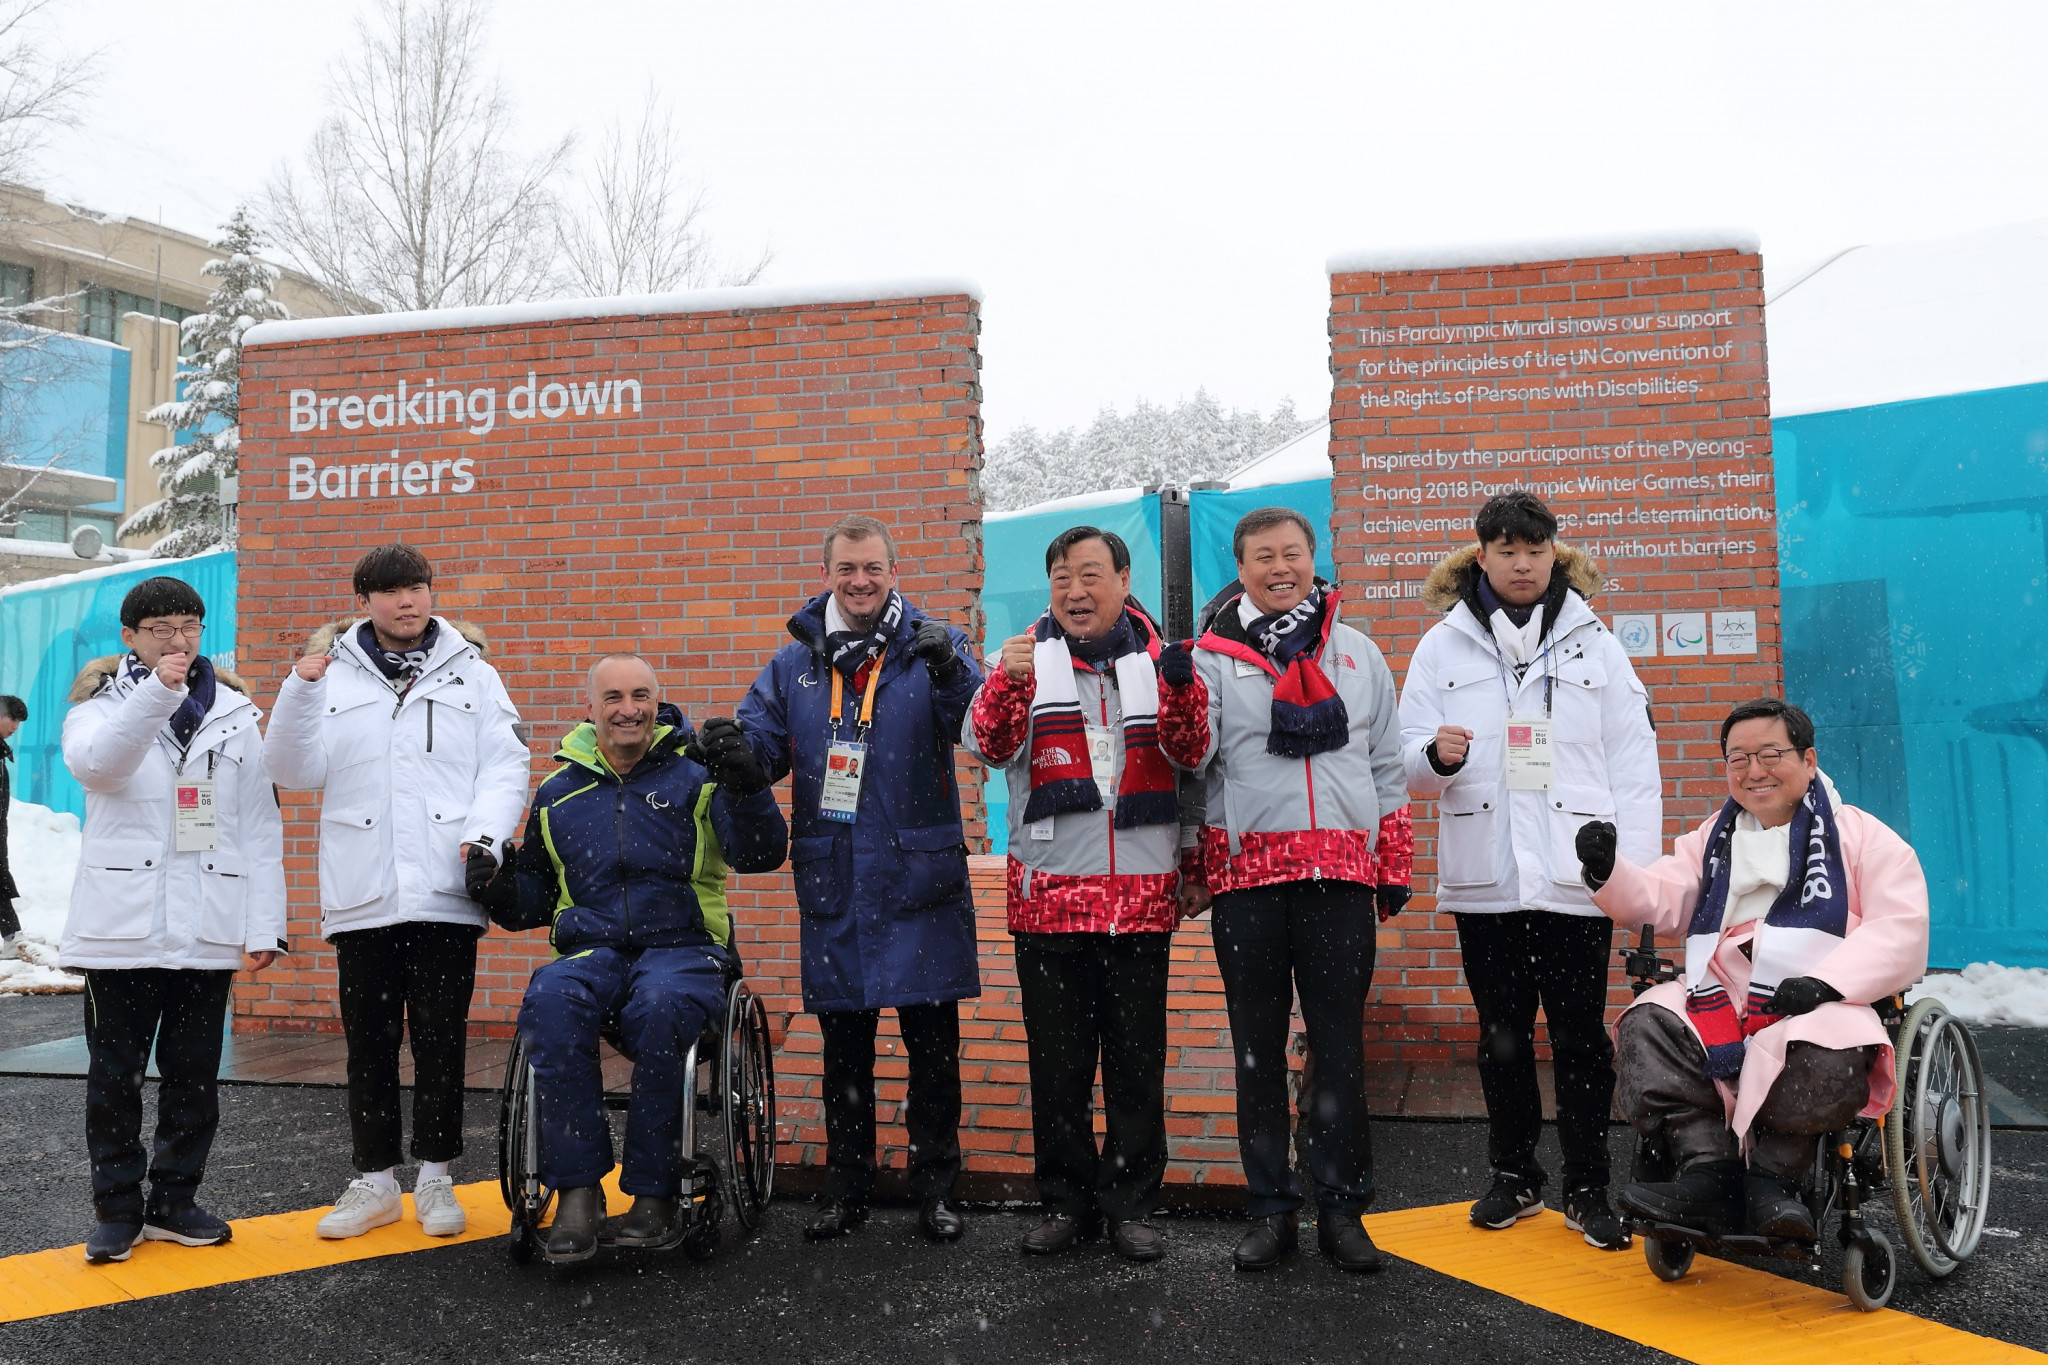 Pyeongchang 2018 Paralympic Mural unveiled at Athletes' Village